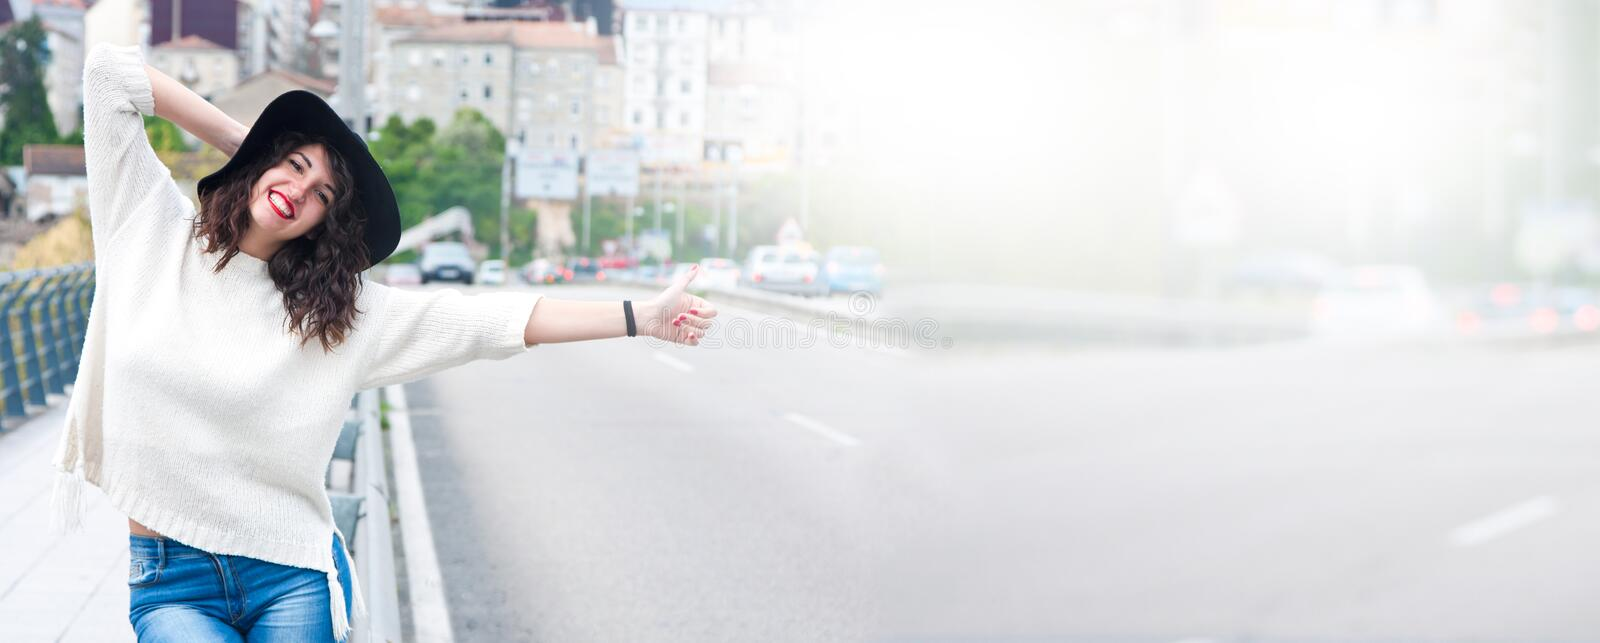 Young woman doing auto stop royalty free stock photos